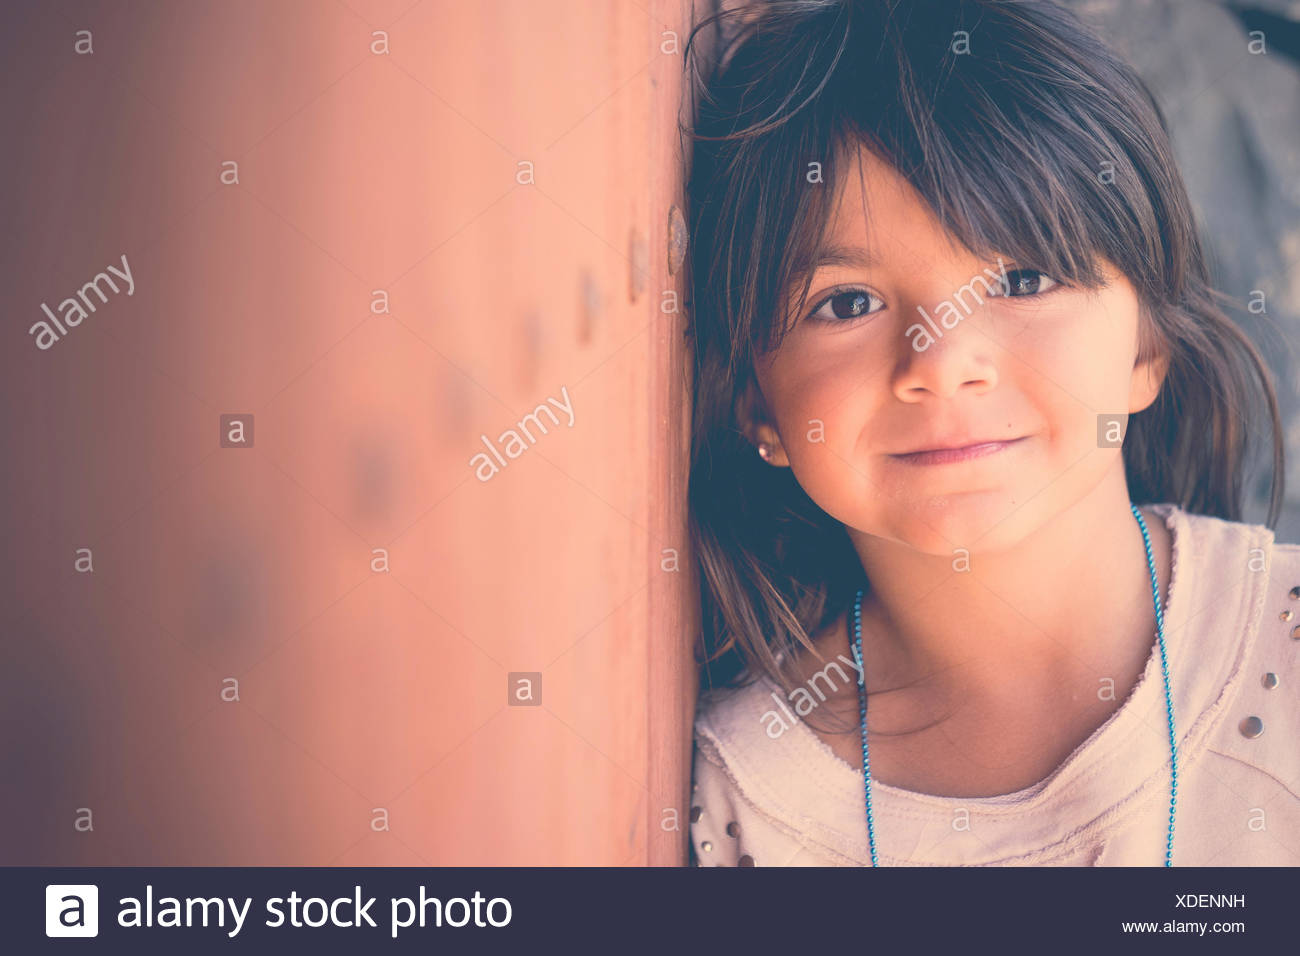 Portrait of smiling girl leaning against wall Photo Stock